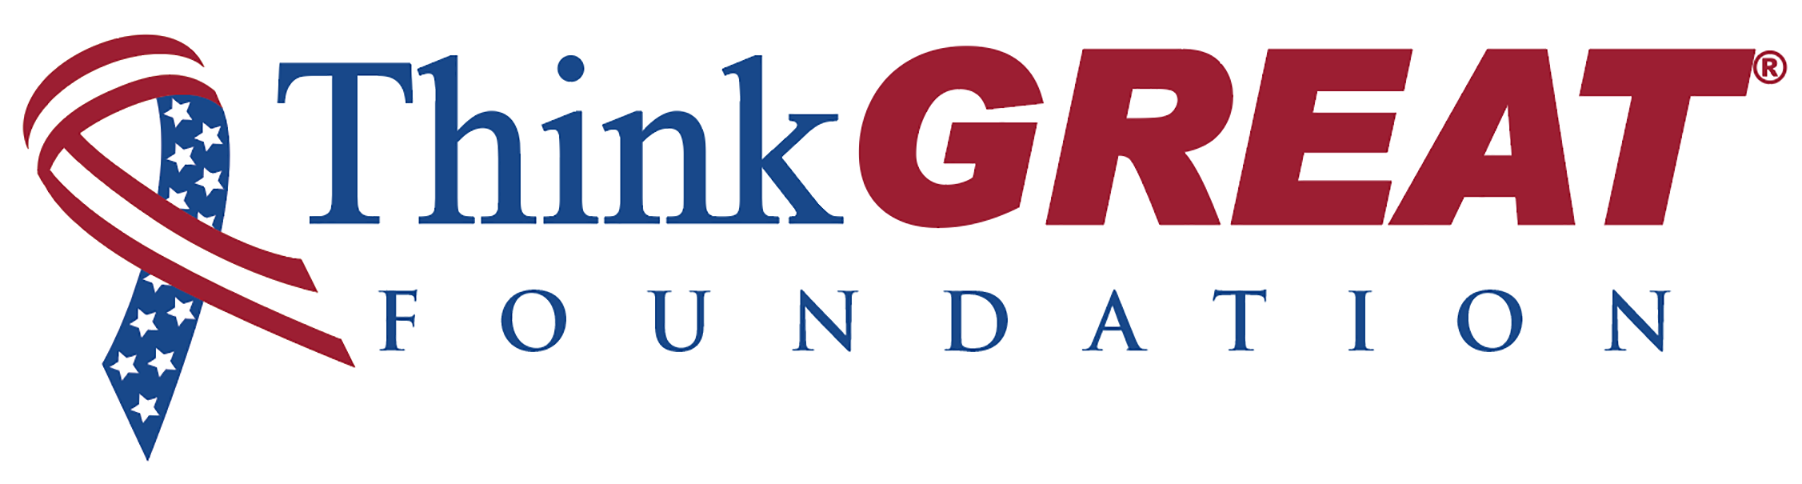 Think GREAT Foundation